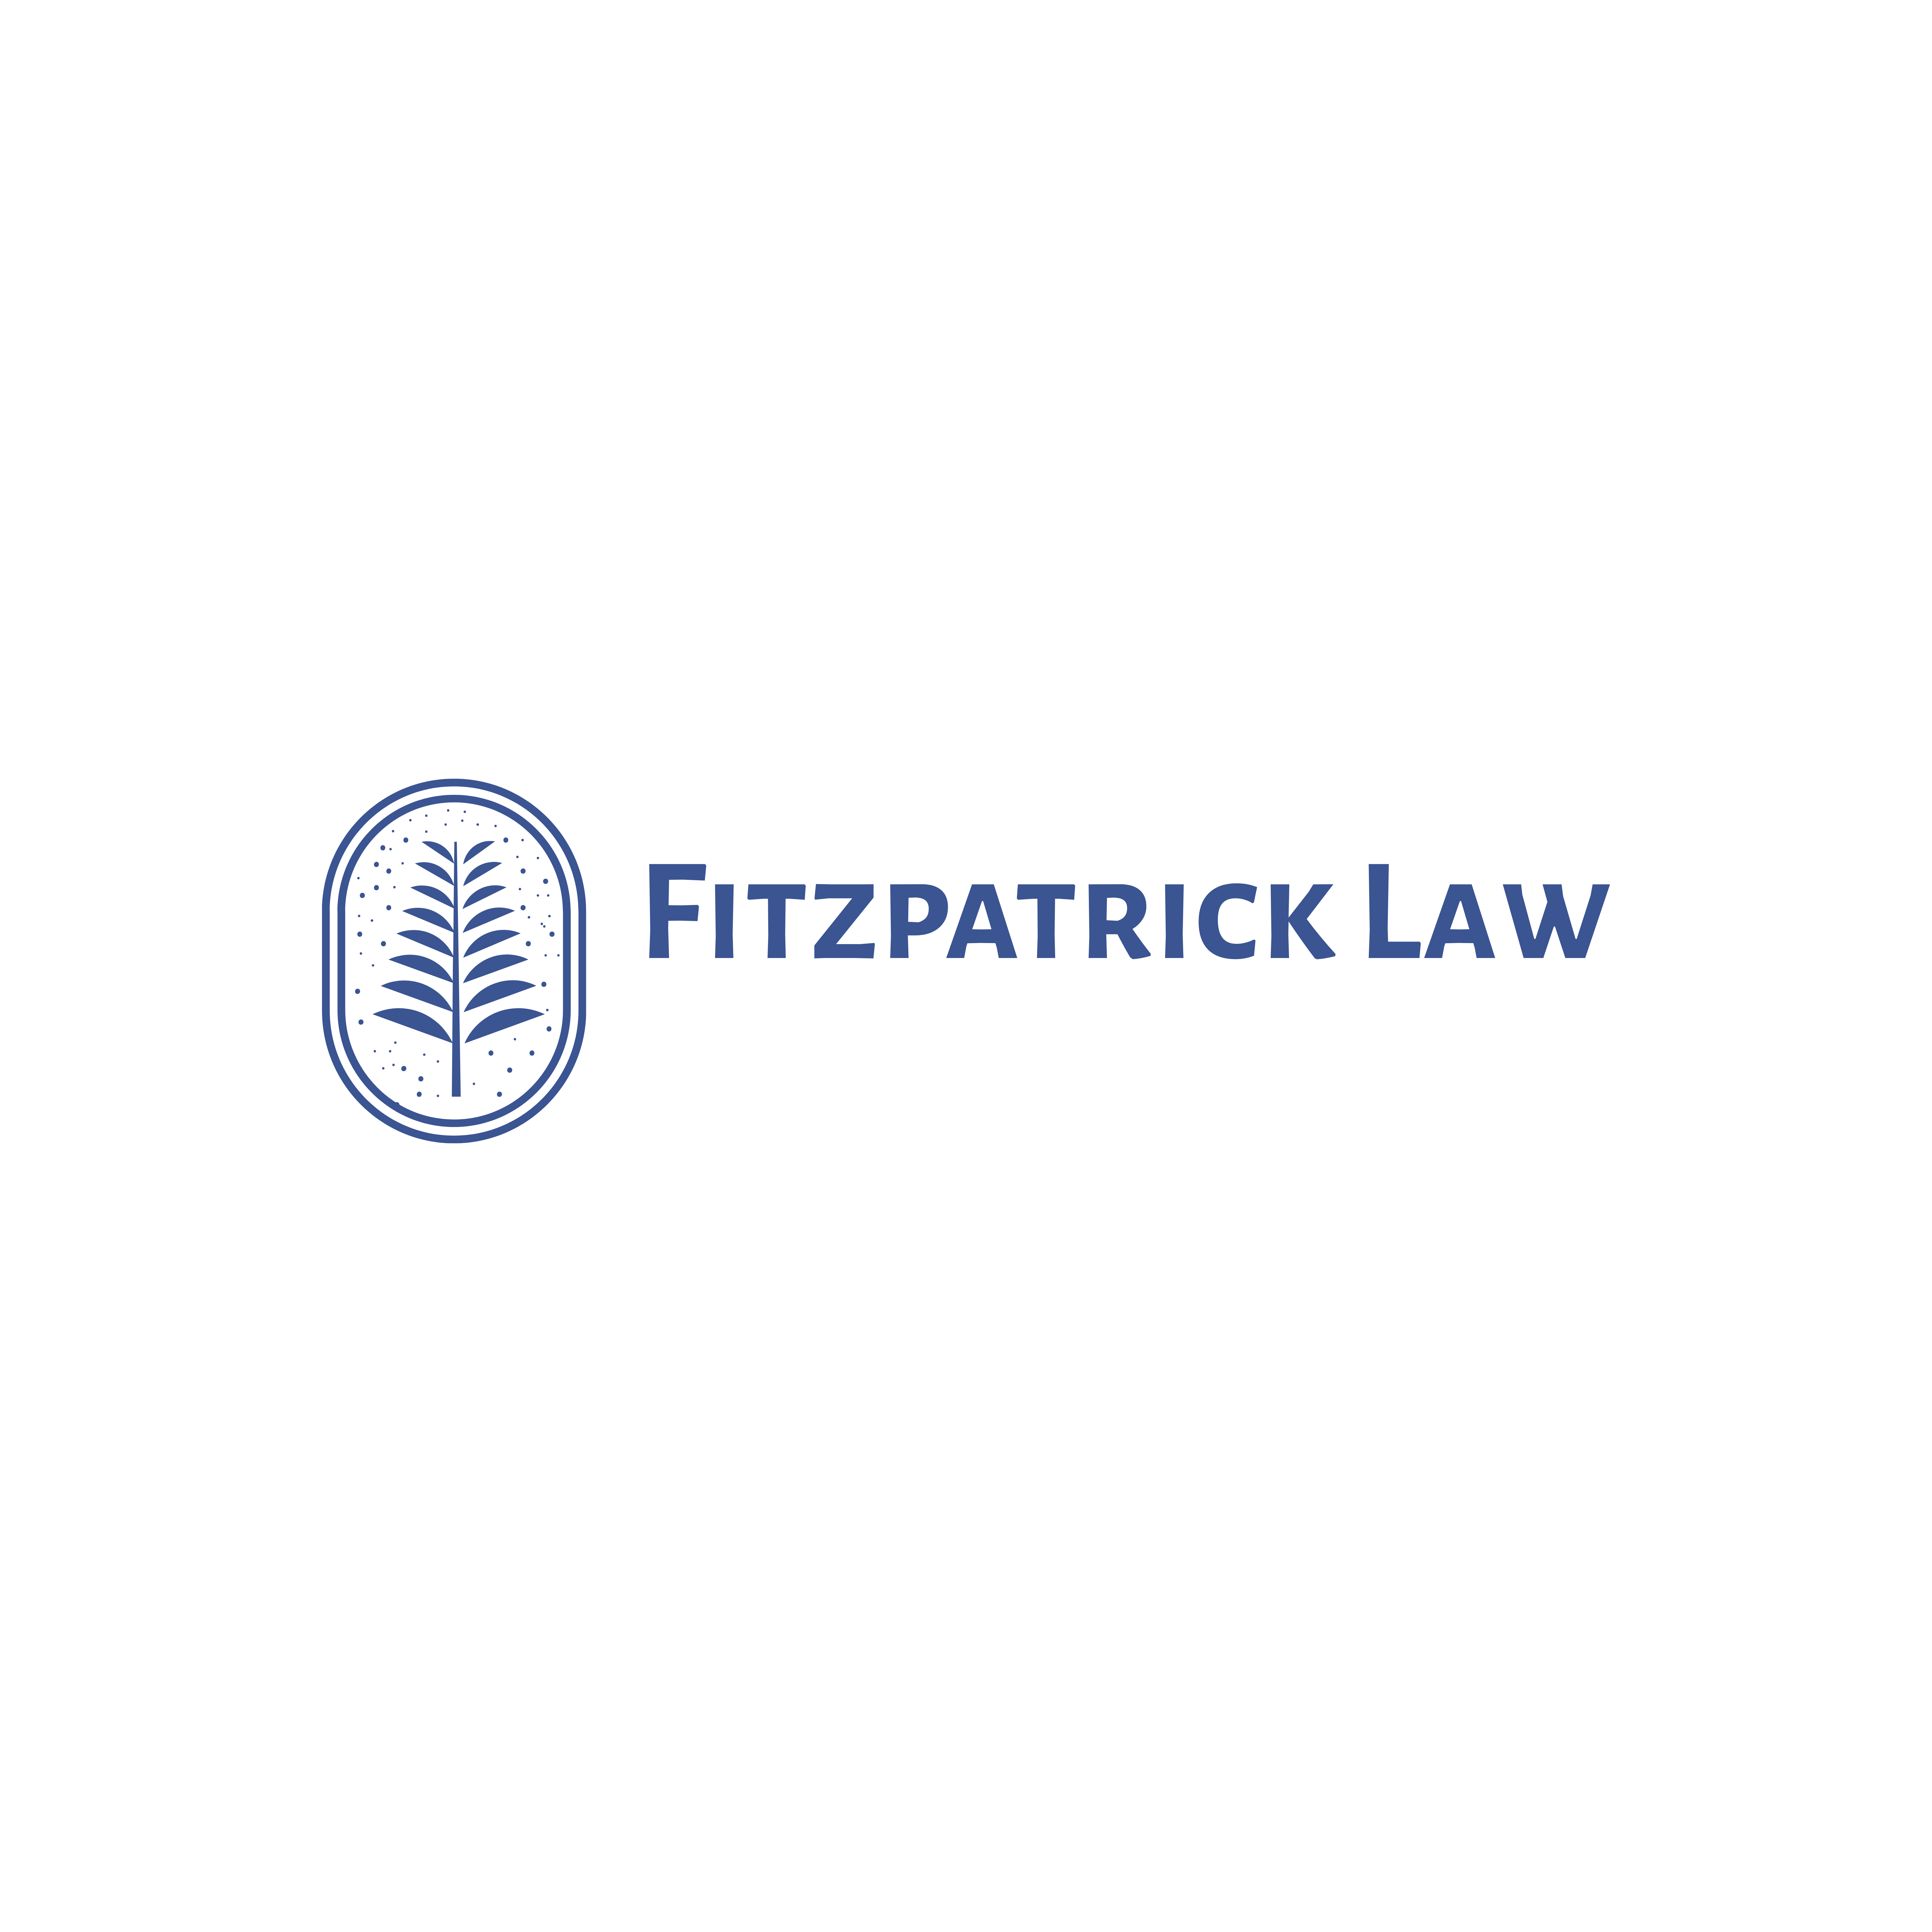 Fitzpatrick Law - Southbury, CT 06488 - (203)516-8990 | ShowMeLocal.com